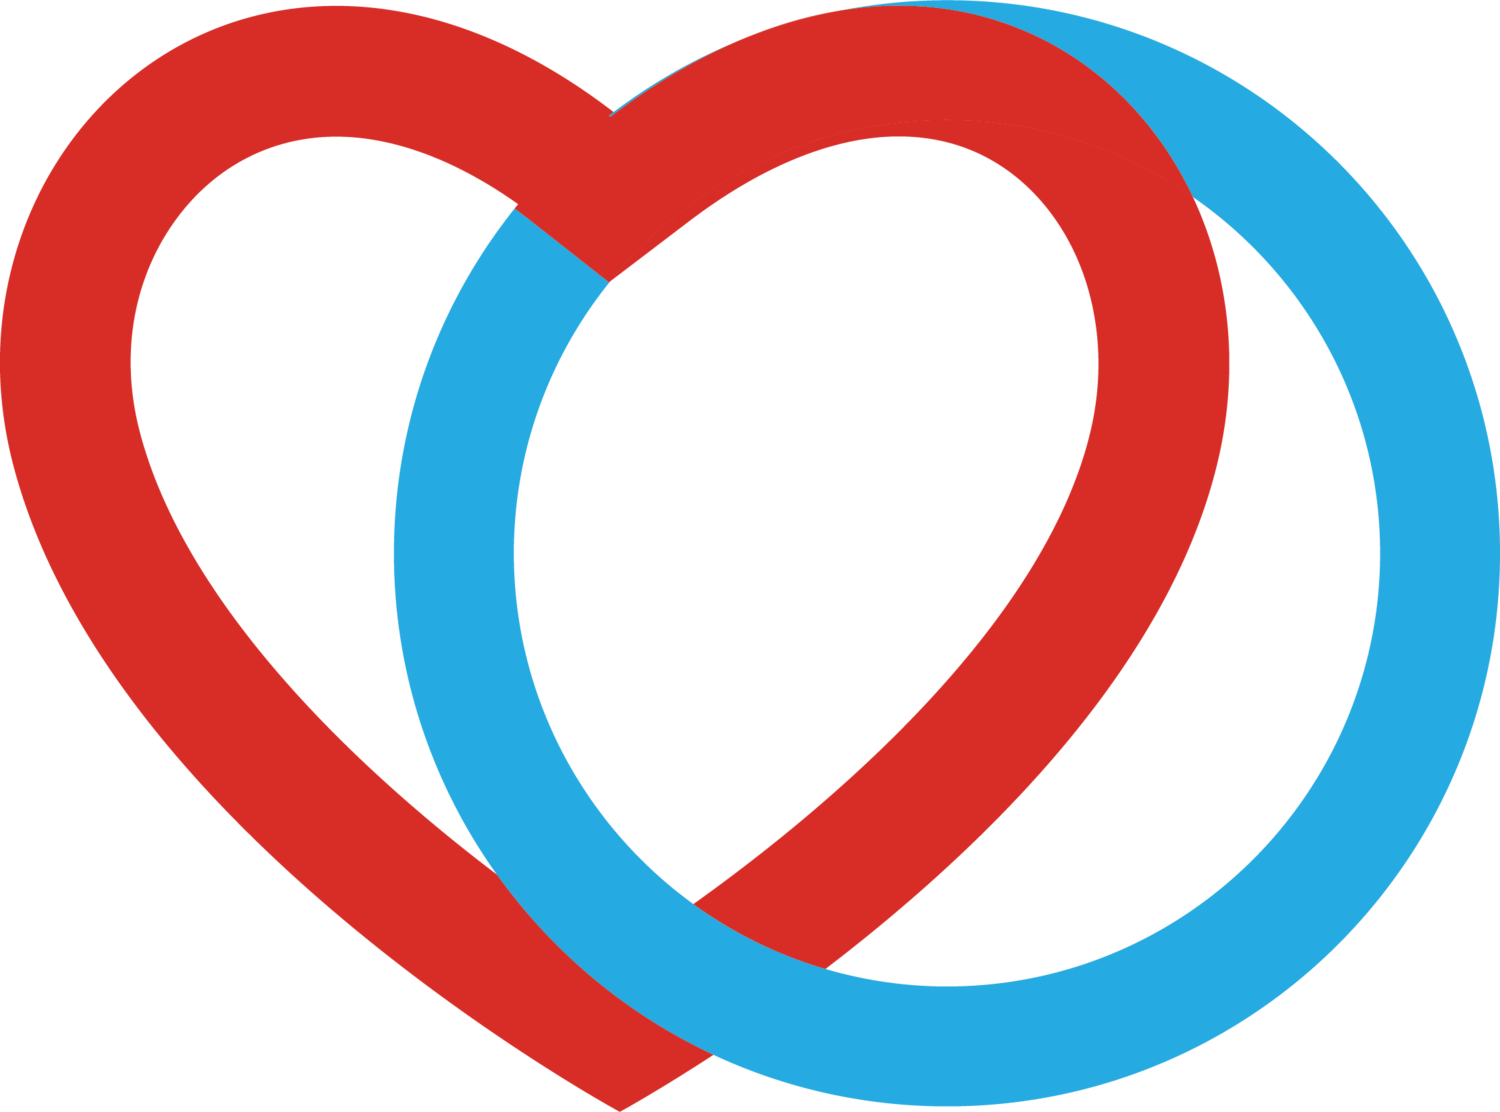 Clipart heart disease image freeuse library Making the DIABETES HEART Connection image freeuse library